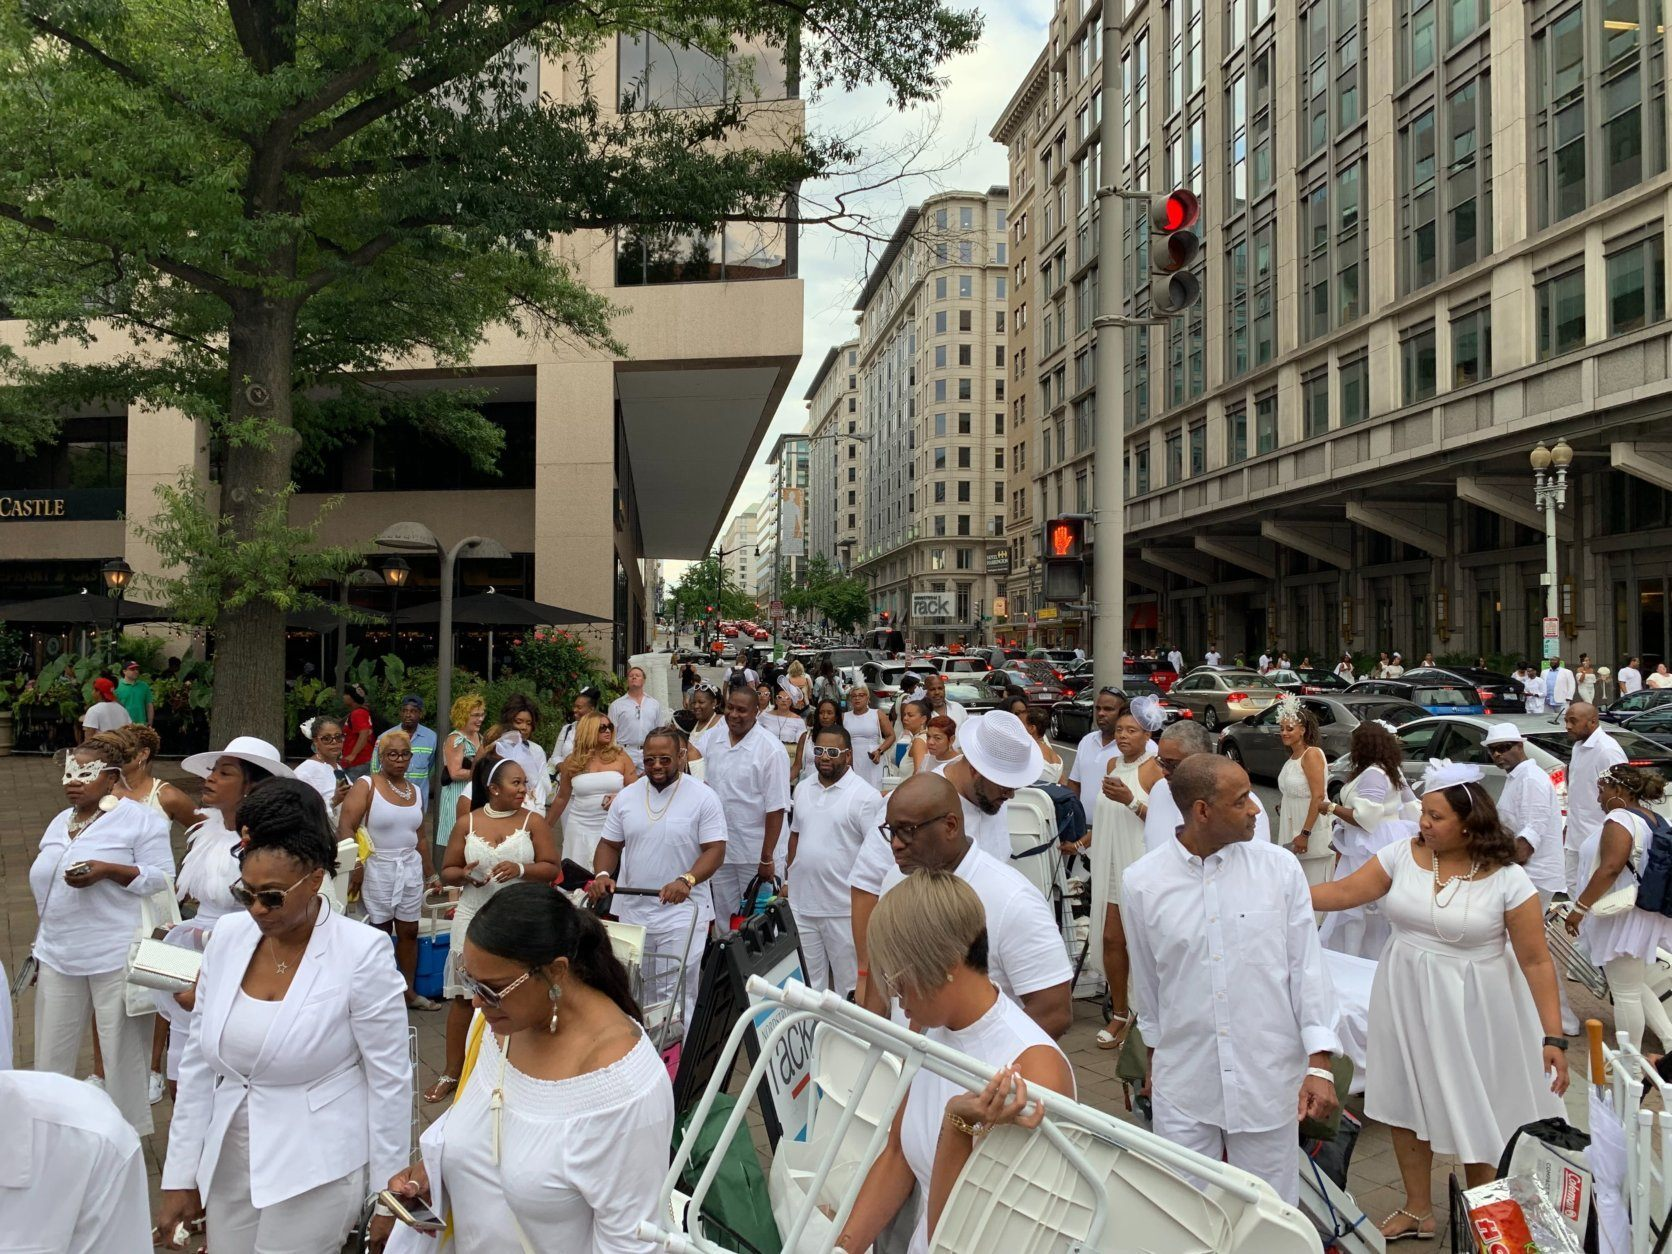 """<p>After the fifth edition of the party <a href=""""https://wtop.com/life-style/2018/08/fifth-dc-diner-en-blanc-takes-over-nats-park/"""" target=""""_blank"""" rel=""""noopener"""">fell flat in Nats Park</a> last August, Linda Davis, whose firm The Davis Group has organized all of the past local Diners en Blanc, said she learned that the event is better when it&#8217;s not contained in &#8220;a box.&#8221;</p> <p>&#8220;Certainly,&#8221; Davis said, &#8220;Nats Park is a beautiful setting, [and] our thought was &#8216;who would not want to be in one of the nation&#8217;s iconic ballparks?&#8217; We had to make the most of being within the bowl, and we had to make some adjustments. [The Nats] have certain guidelines that were probably not the best fit for this event.&#8221;</p>"""